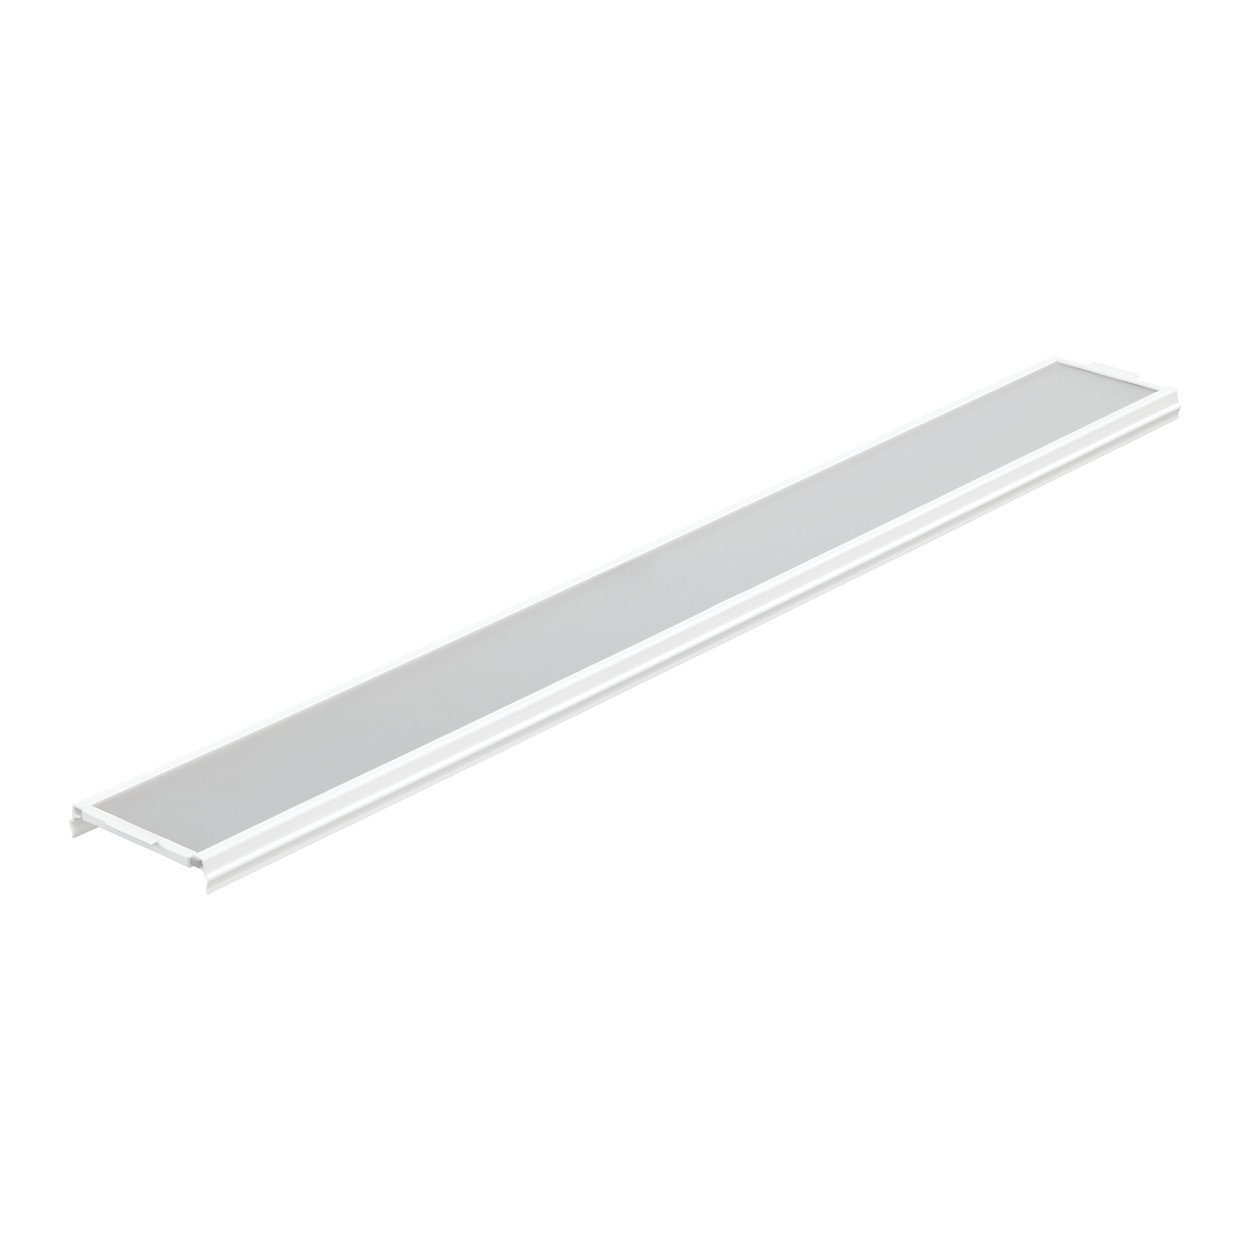 IntelliHue SkyRibbon Wall Washing Powercore - recessed linear interior LED wall washing fixture with intelligent white and color light